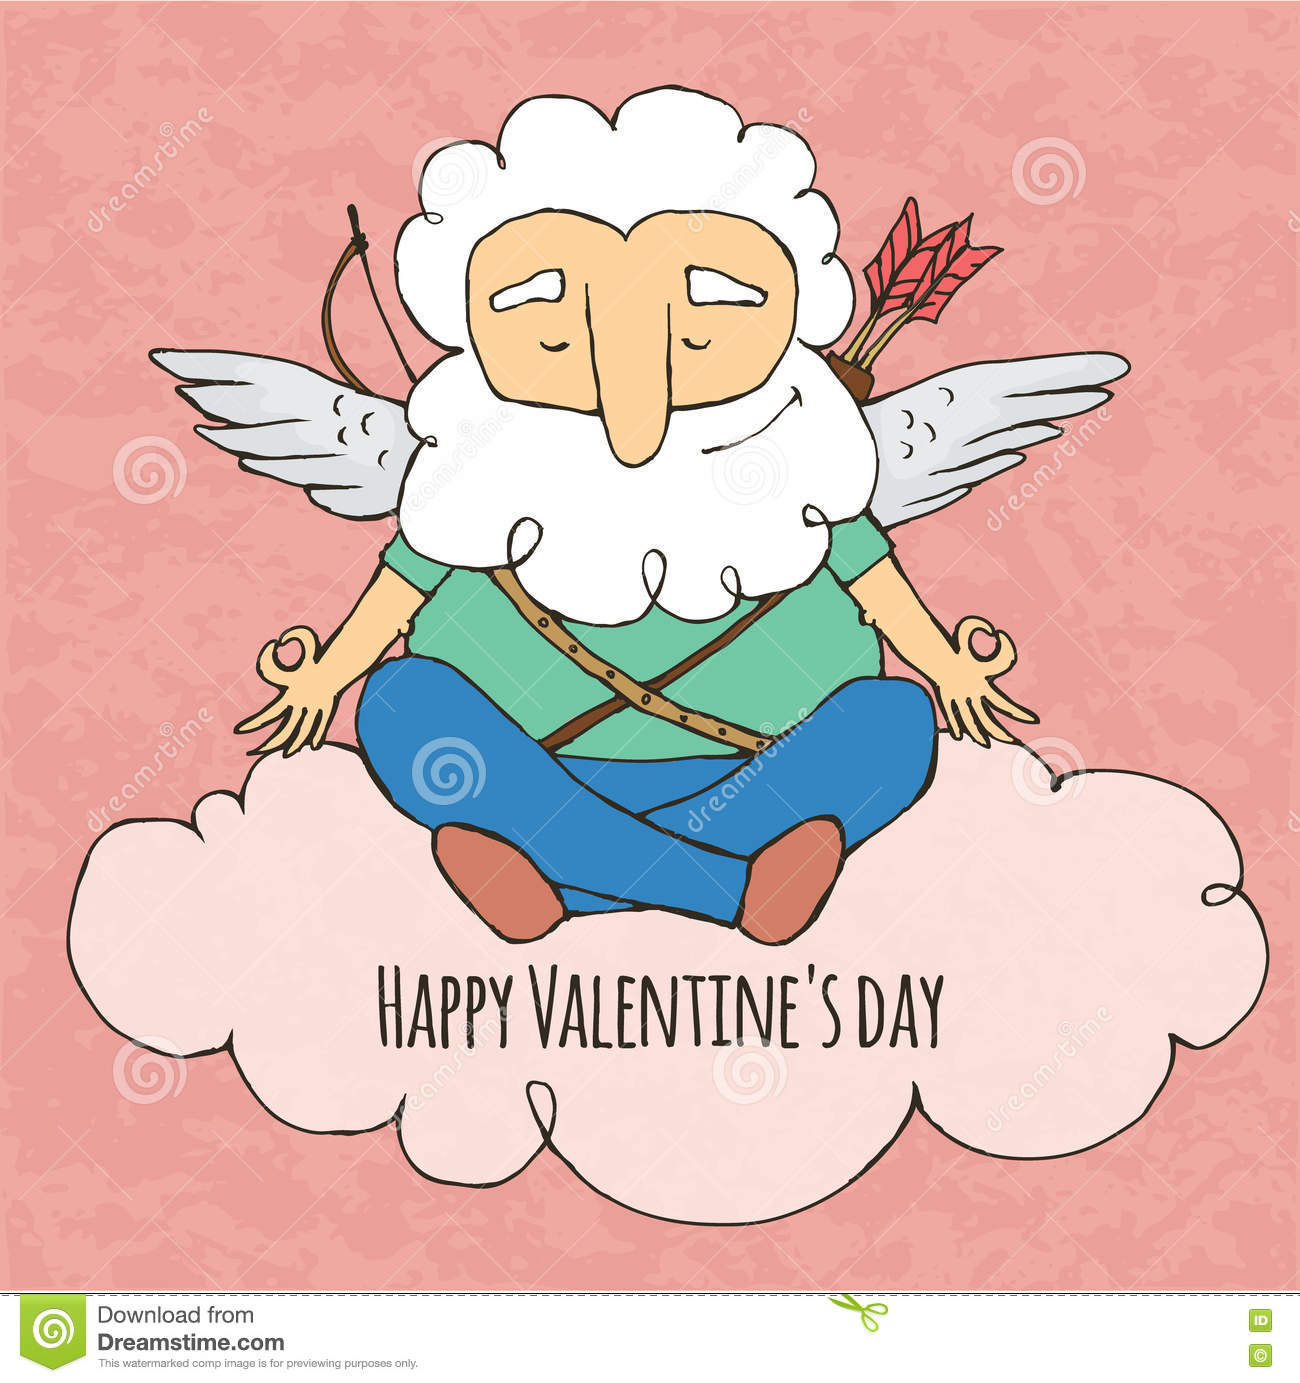 Cupid Funny Yogi Sitting In Yoga Posture Valentine S Day Stock